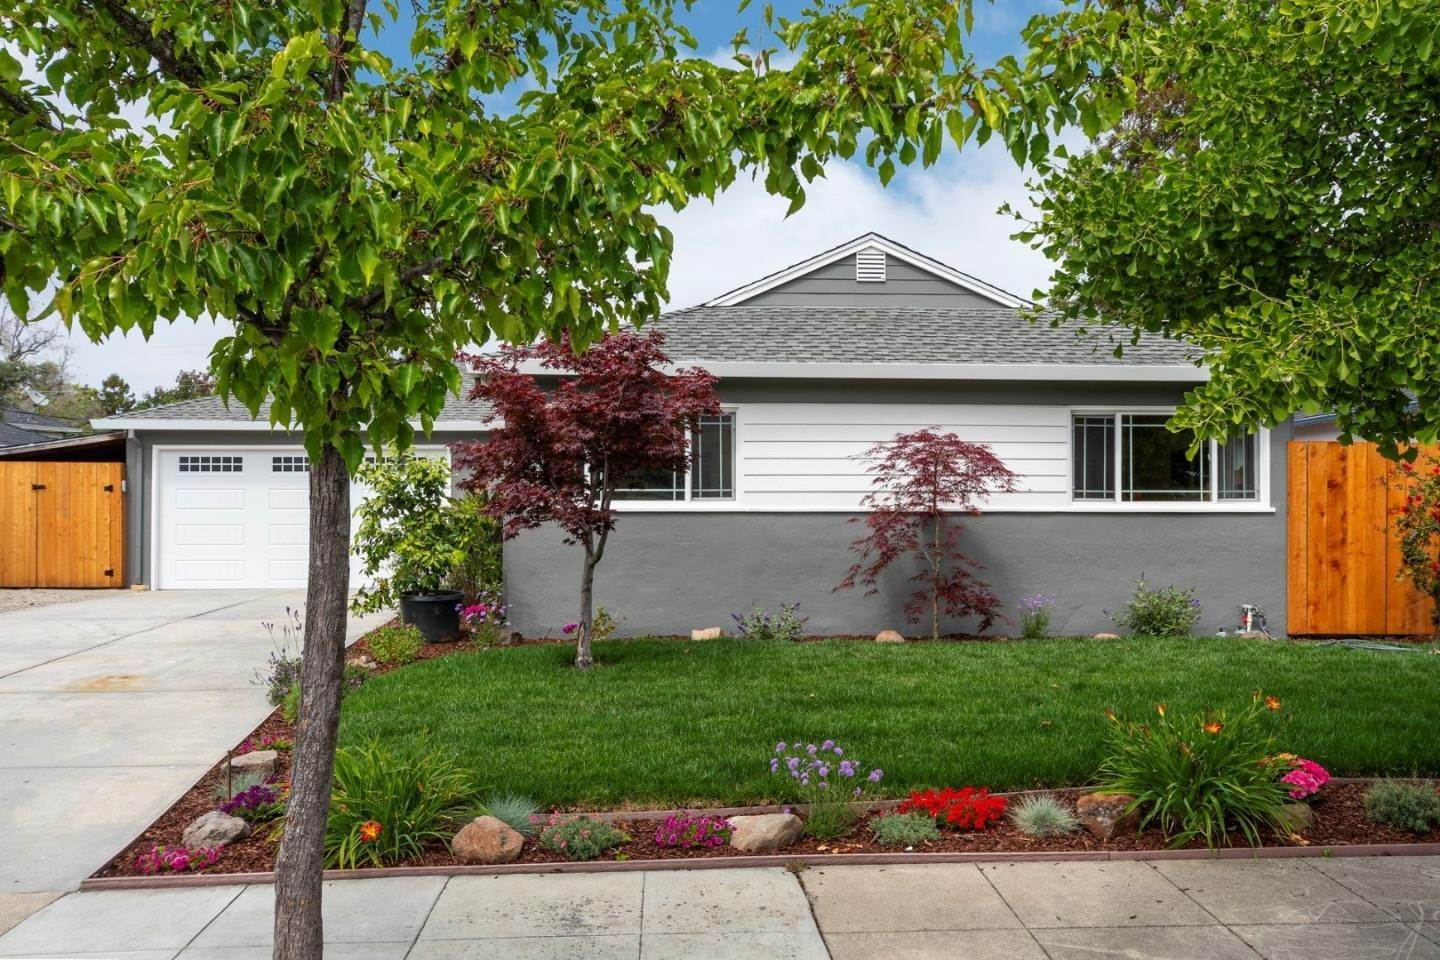 Property for Sale at 1743 Hempstead Place Redwood City, California 94061 United States